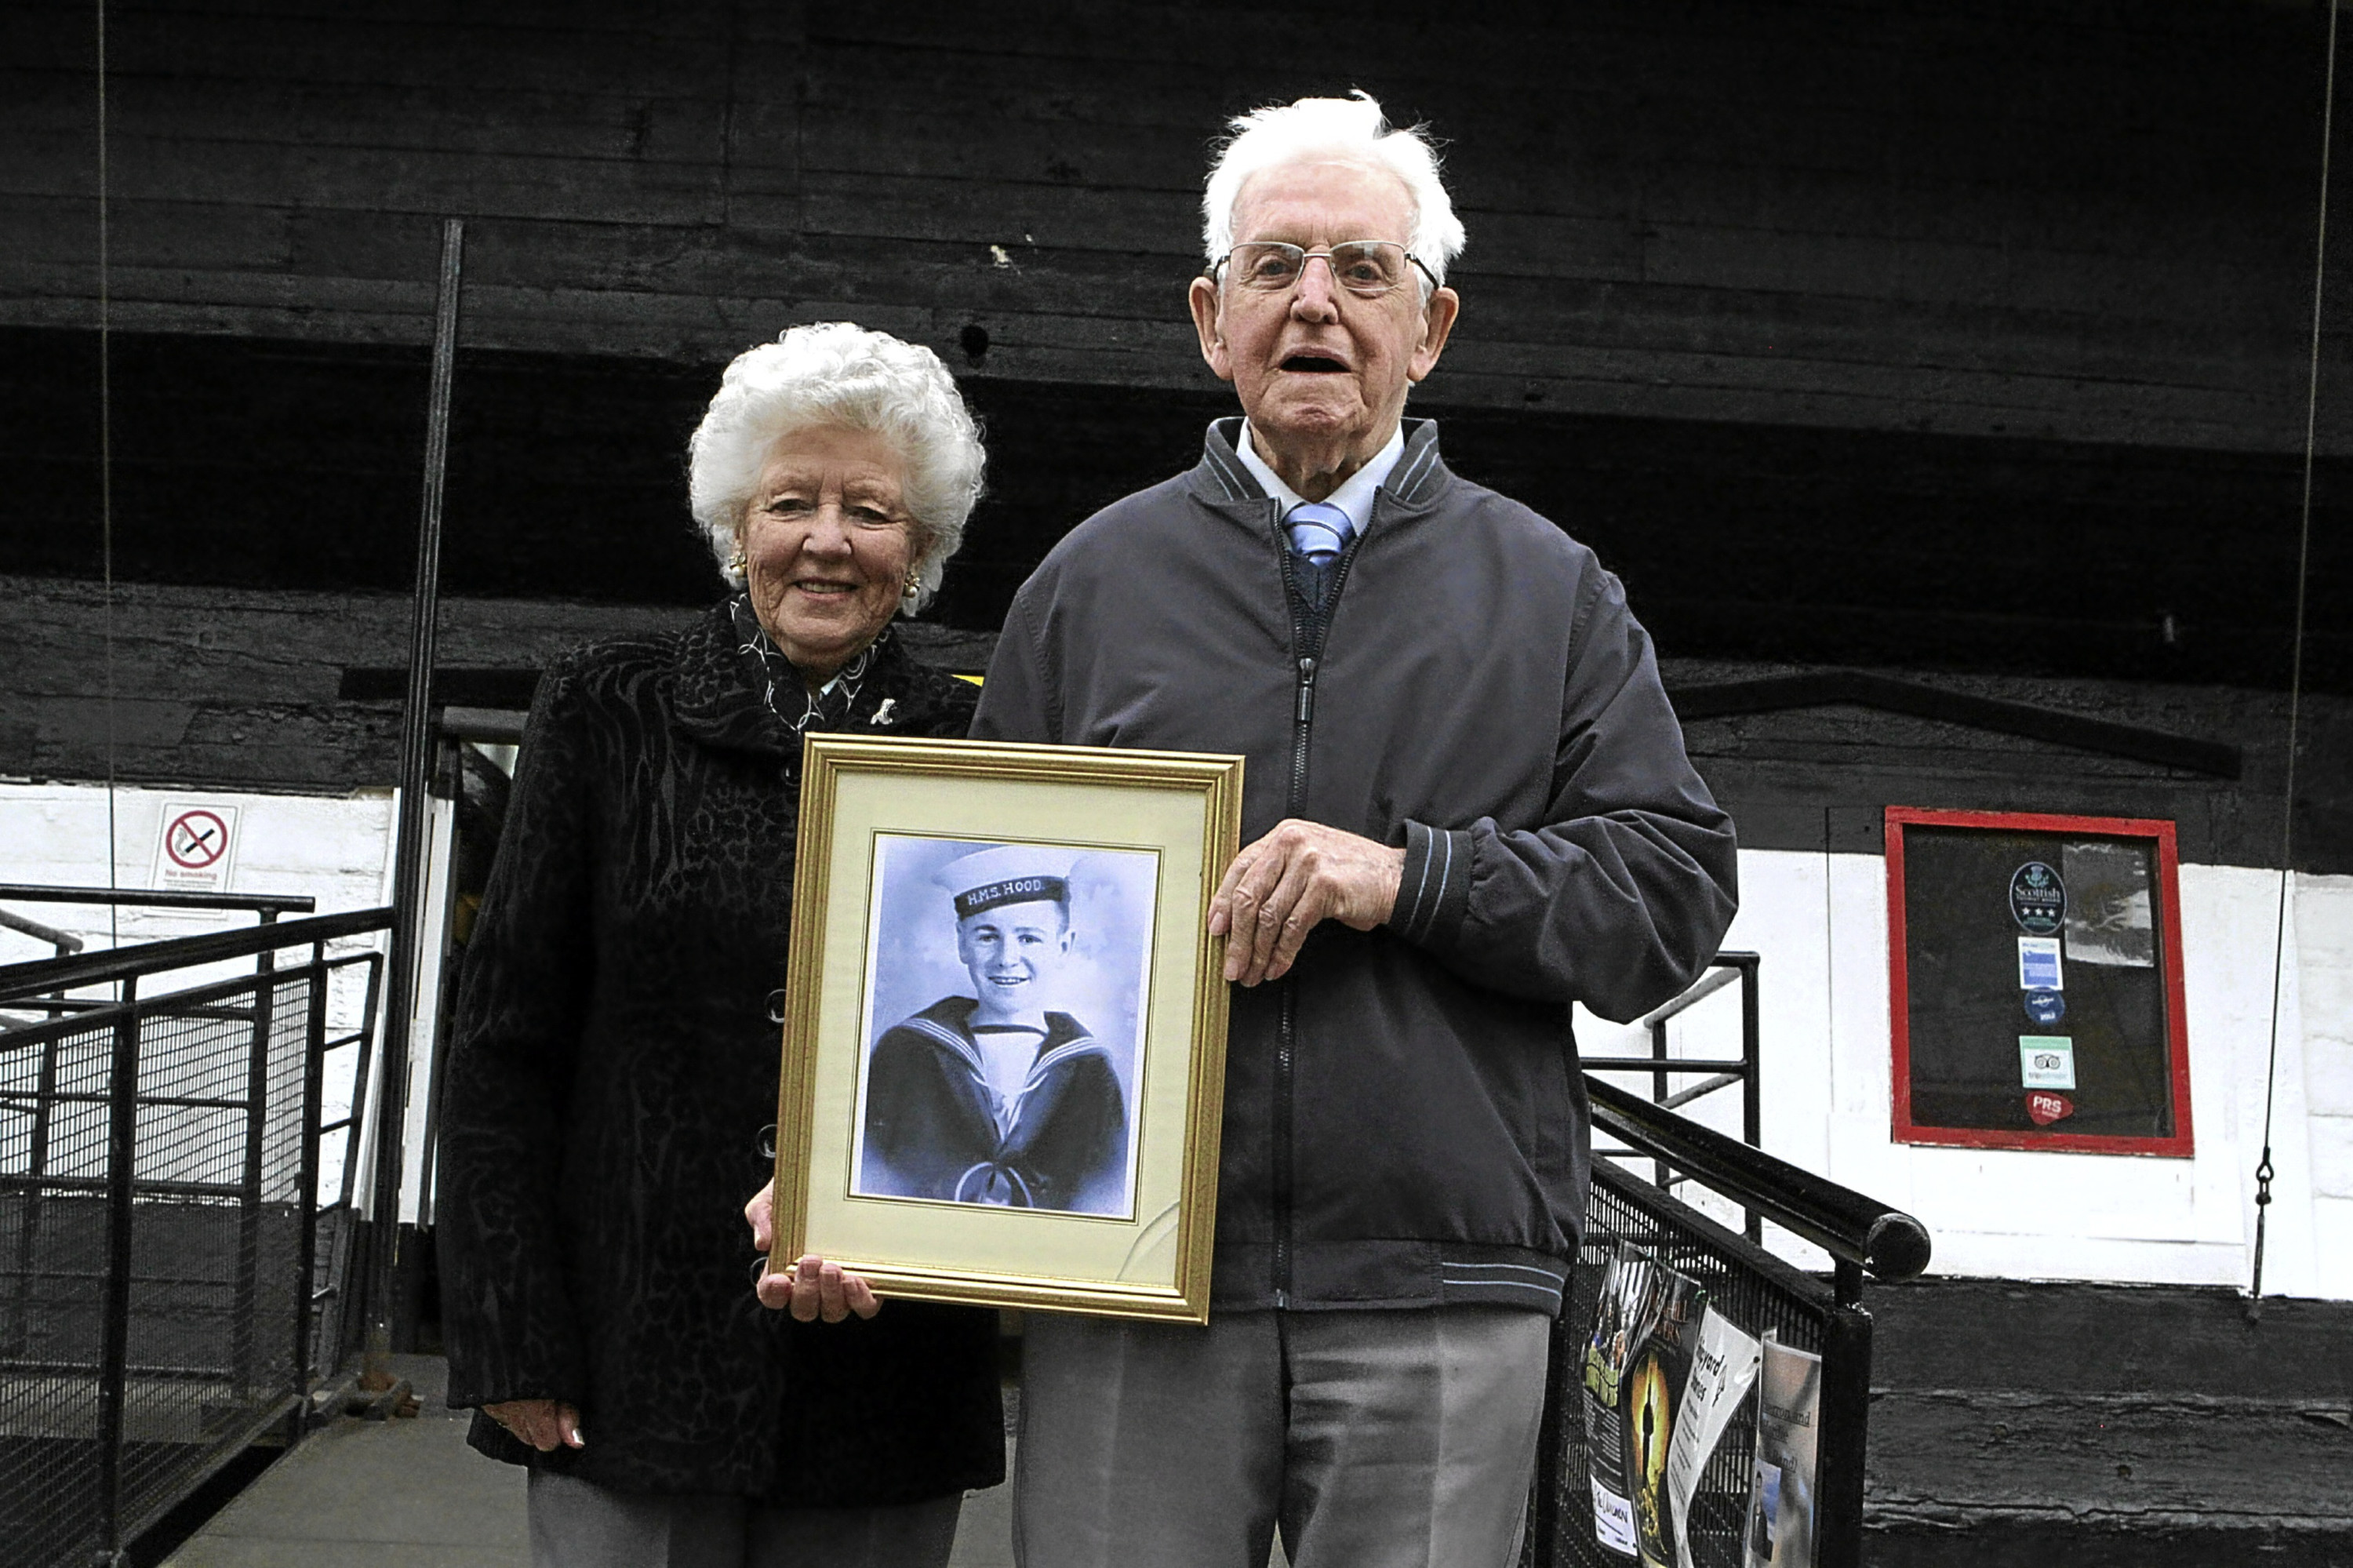 Duncan Knox, whose brother, John, was on the stricken ship, attended the event with his wife, Ann.